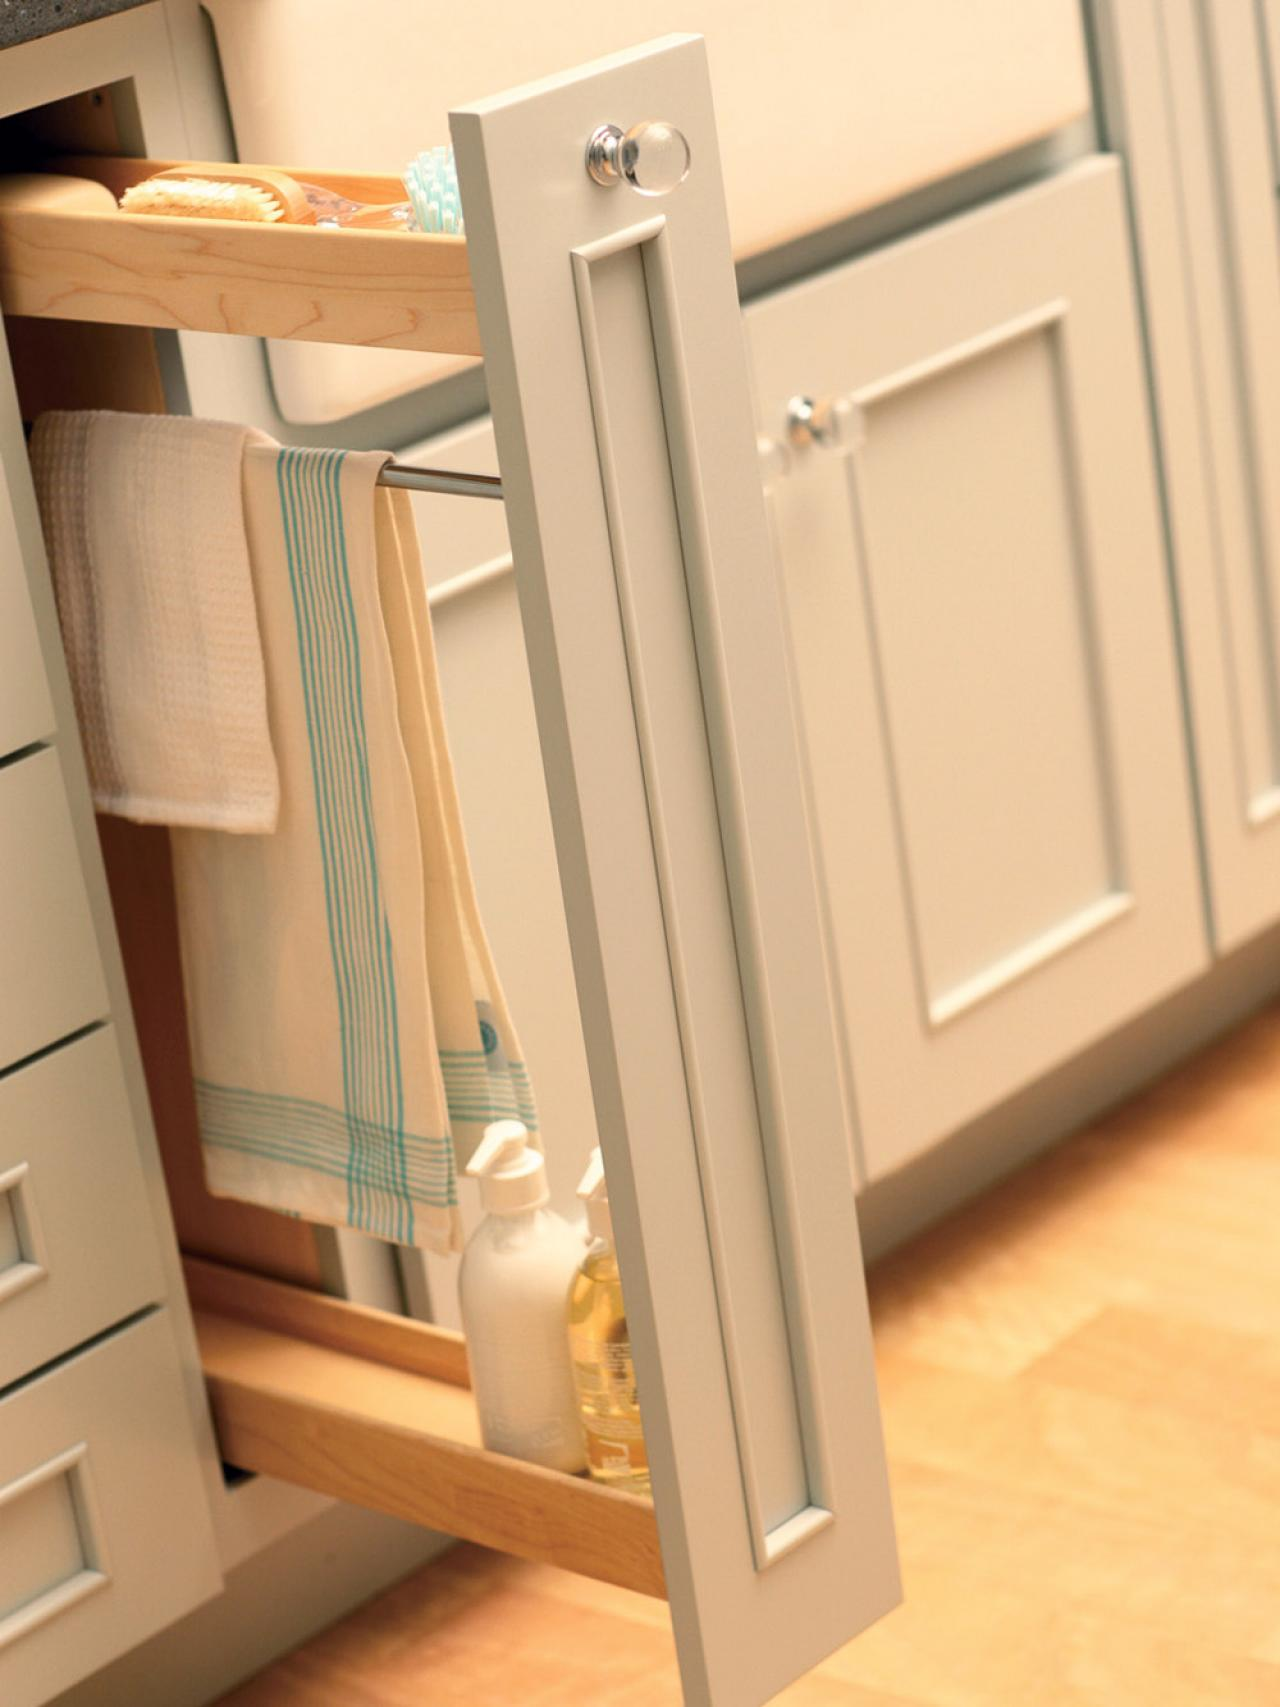 Kitchen storage ideas kitchen ideas design with Kitchen under cabinet storage ideas